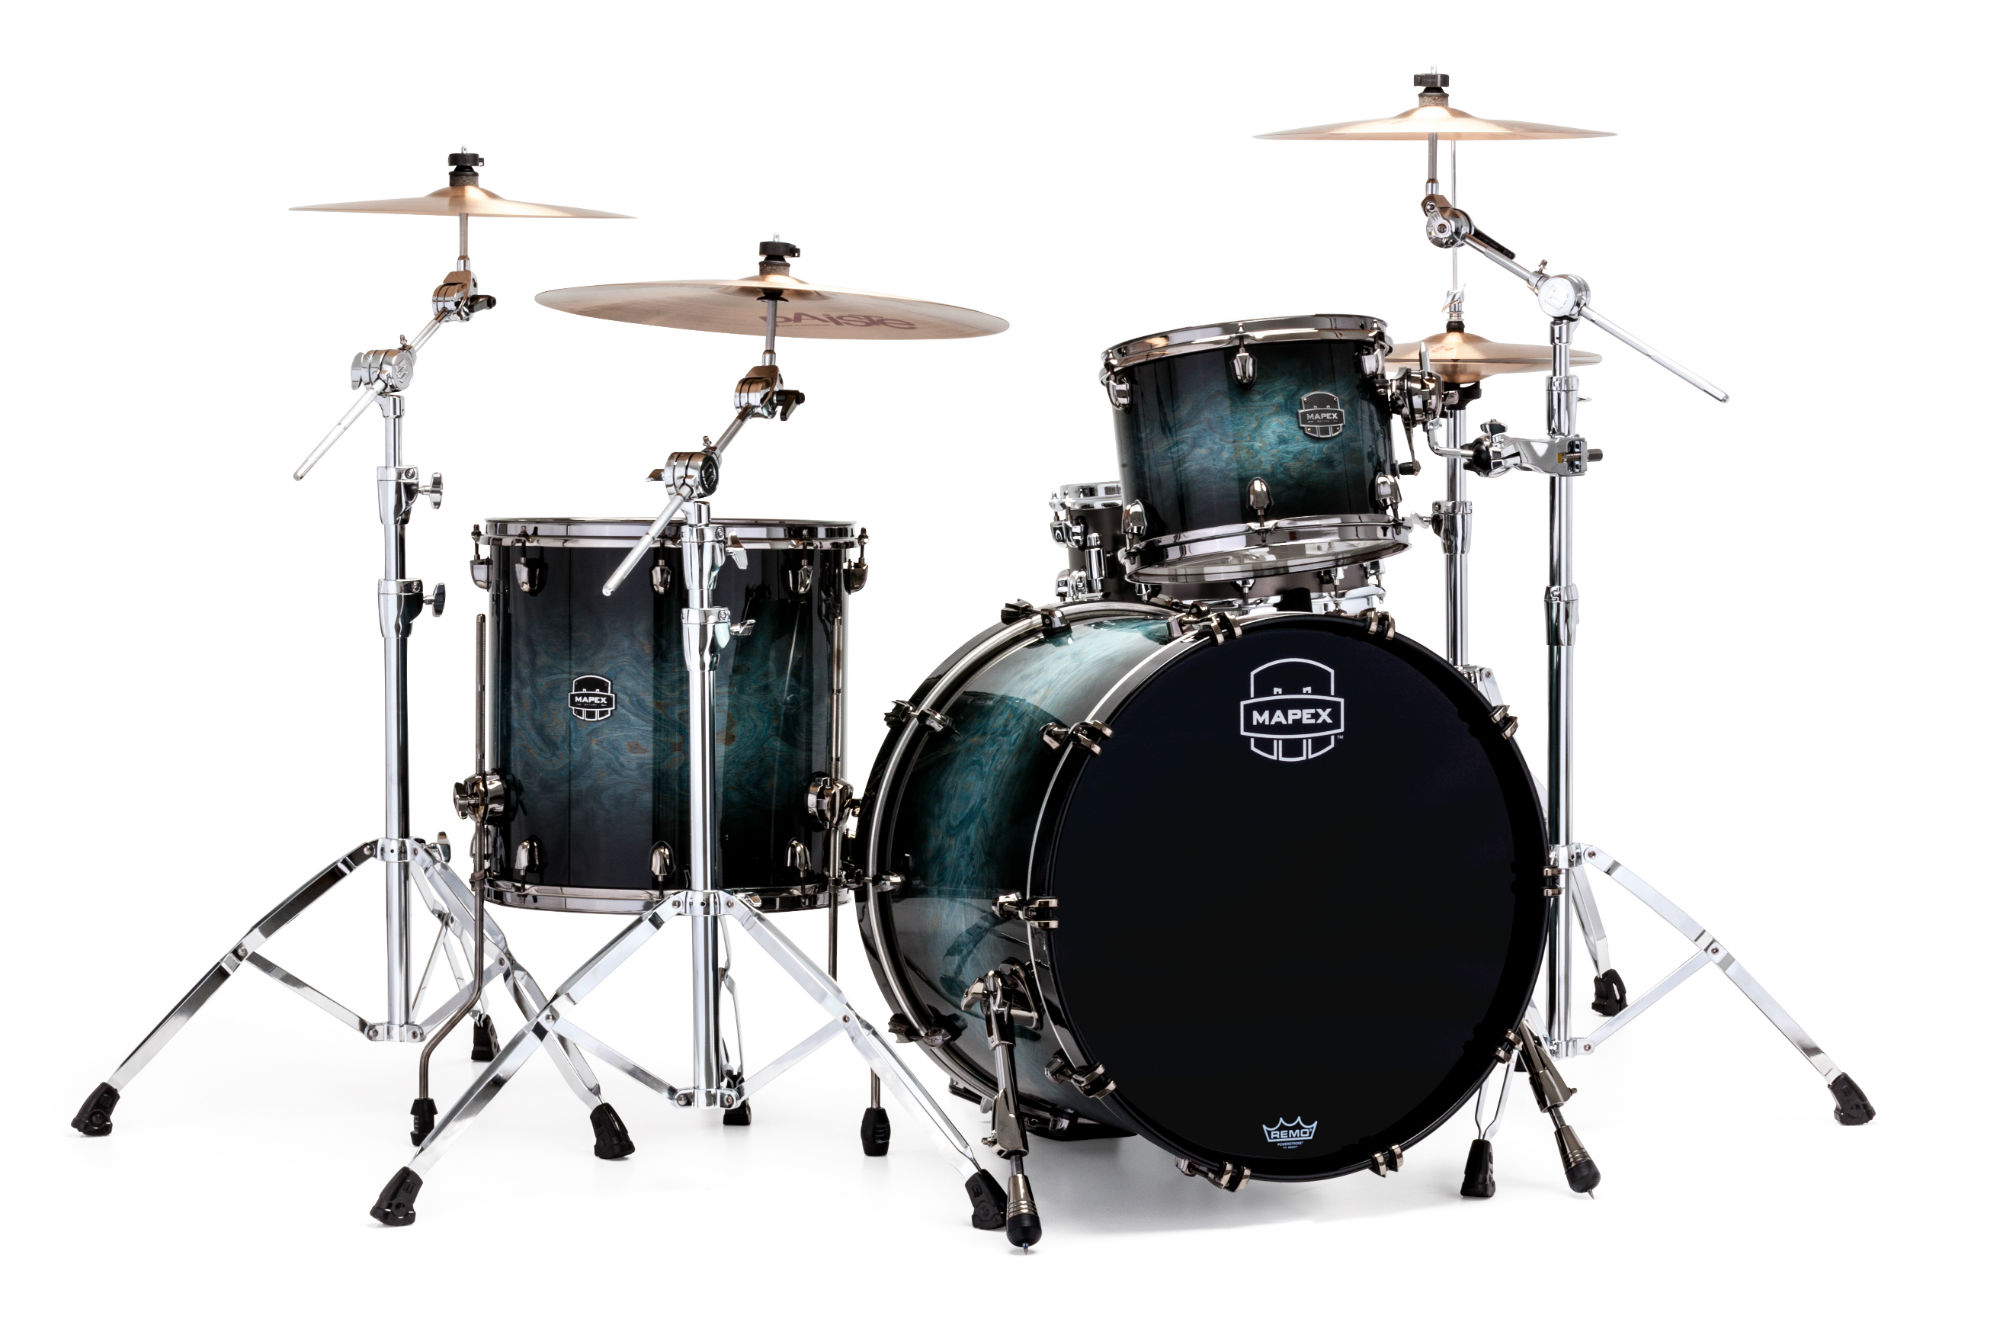 Mapex Saturn V MH Exotic Rock 3-piece shell pack with SONIClear Edge - SV426XBMSL - Natural Ash Burl